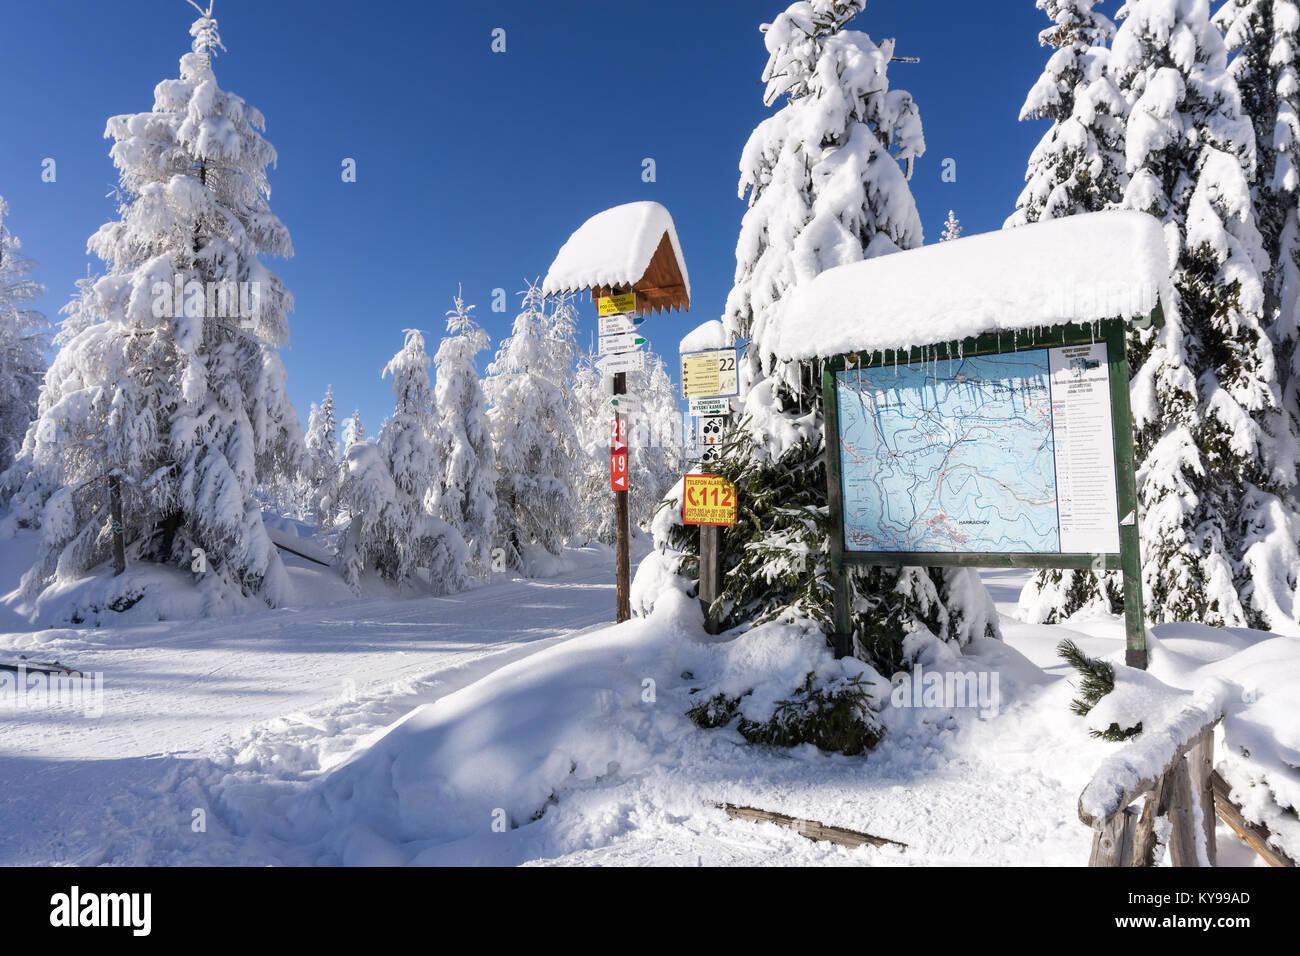 Mountain trail sign with directions and hiking or skiing time in Jakuszyce, Karkonosze (Giant Mountains), Poland. - Stock Image